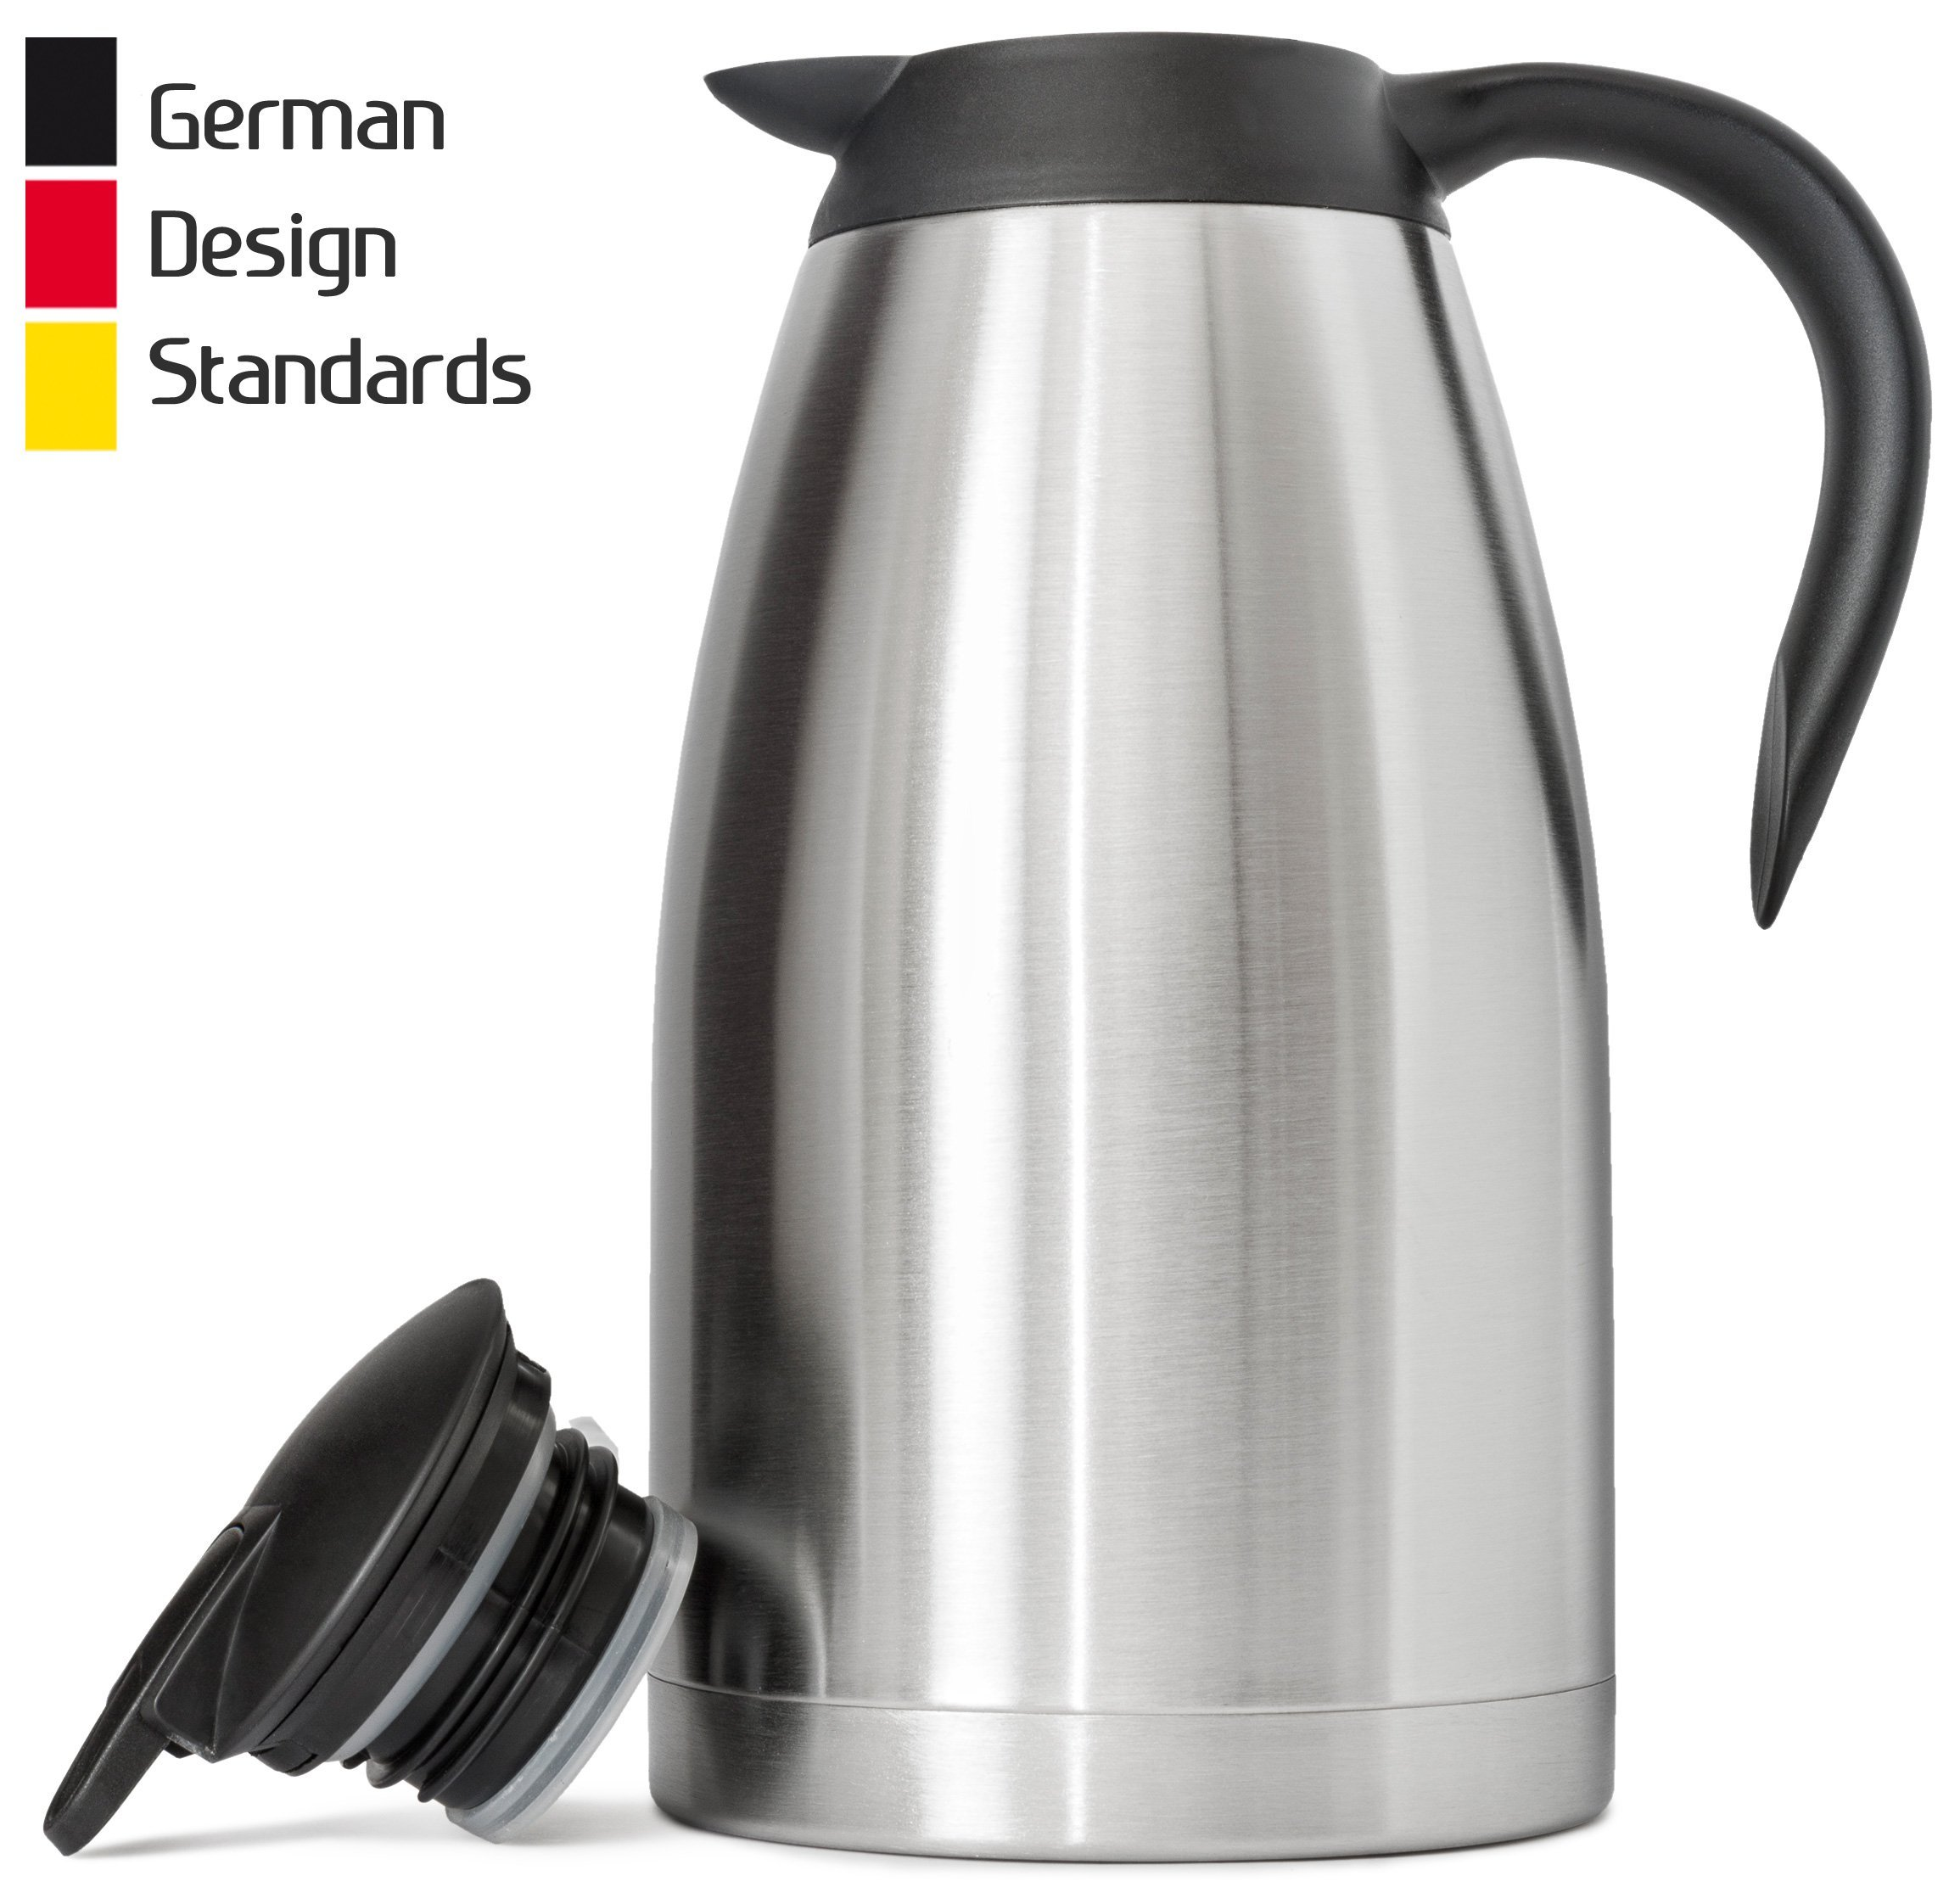 [47% OFF - Ends Aug 12] New 68 Oz (2 Liter) German-Designed Thermal Coffee Carafe/Stainless Steel Insulated Double Wall/BPA-Free Vacuum Thermos/Up to 12-Hrs Heat & 24-Hrs Cold Retention